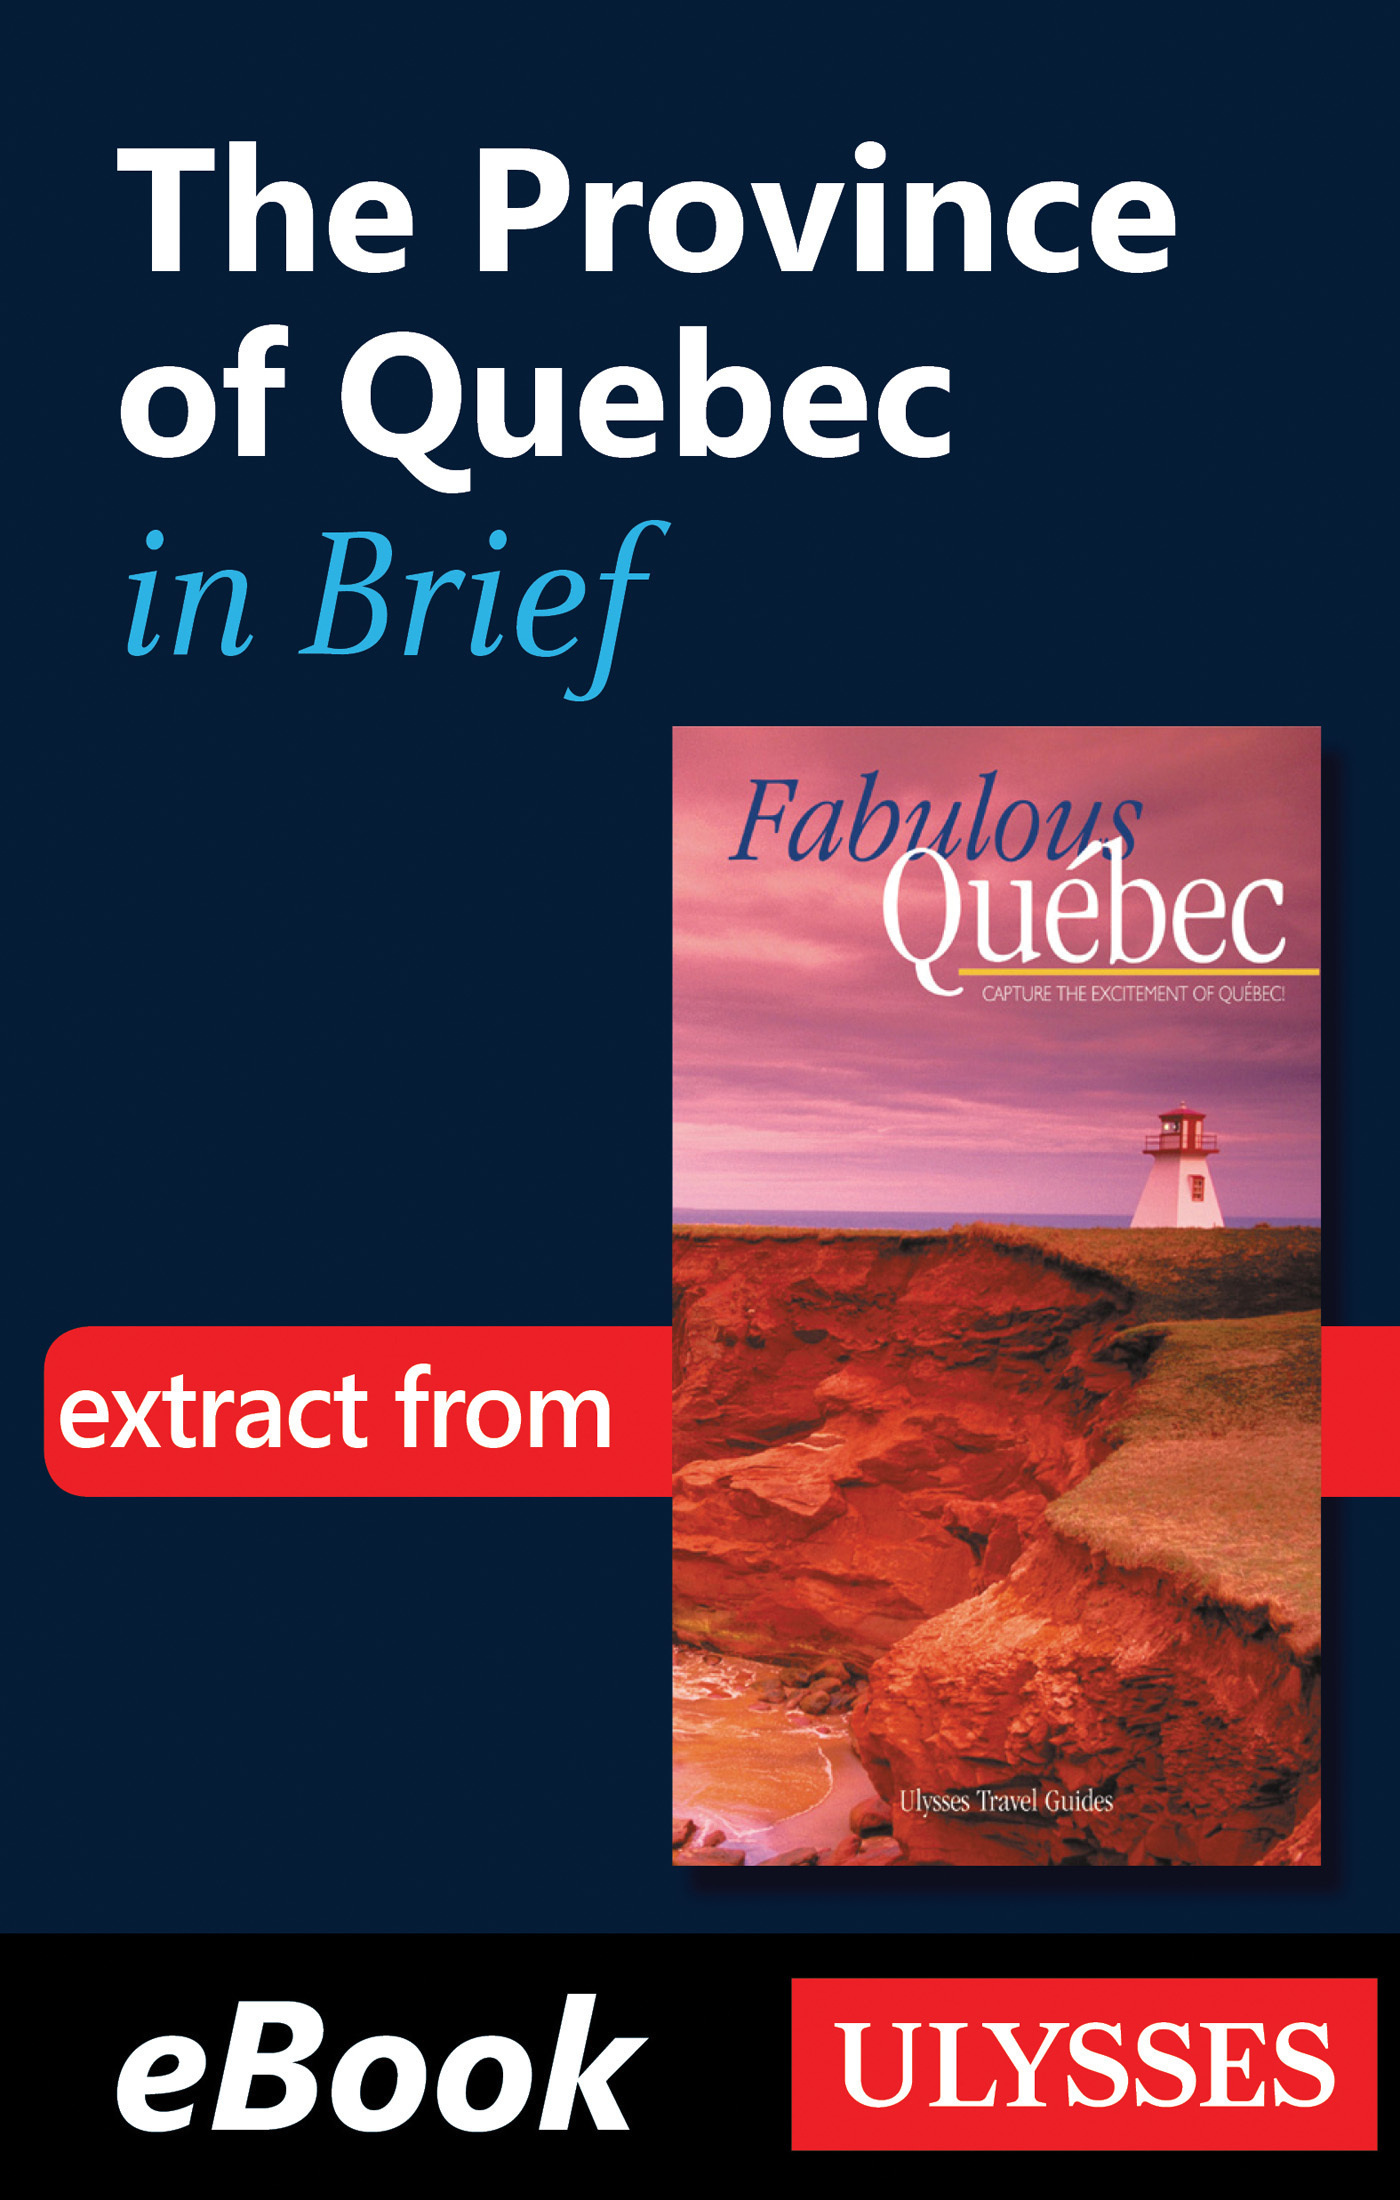 The Province of Quebec in brief